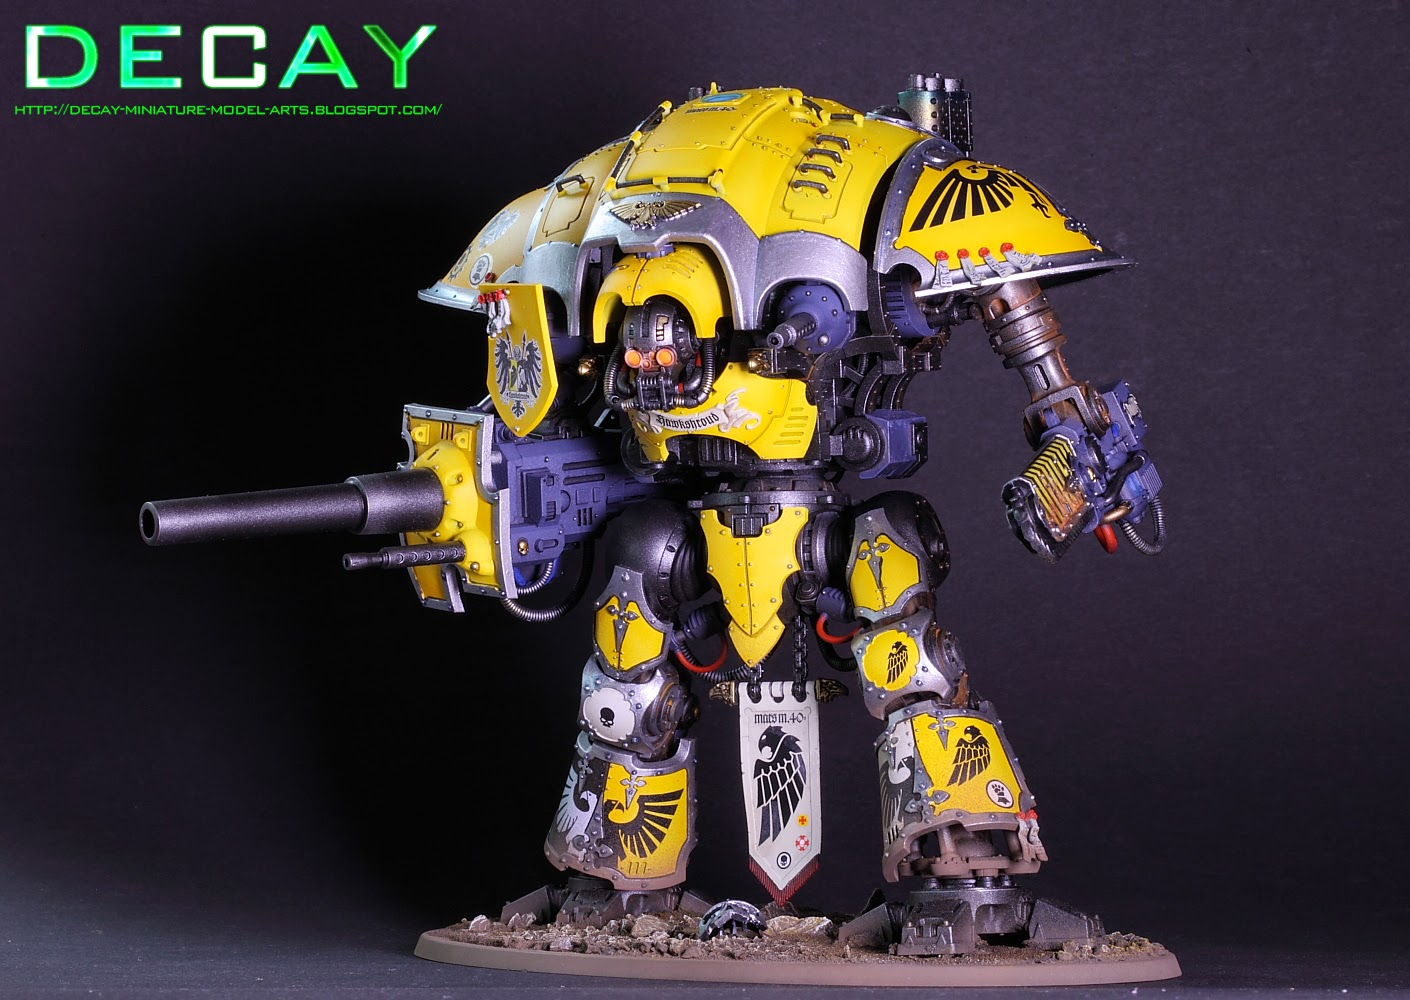 the Knight done and found a House that is using Imperial Fist colors 1410x1000